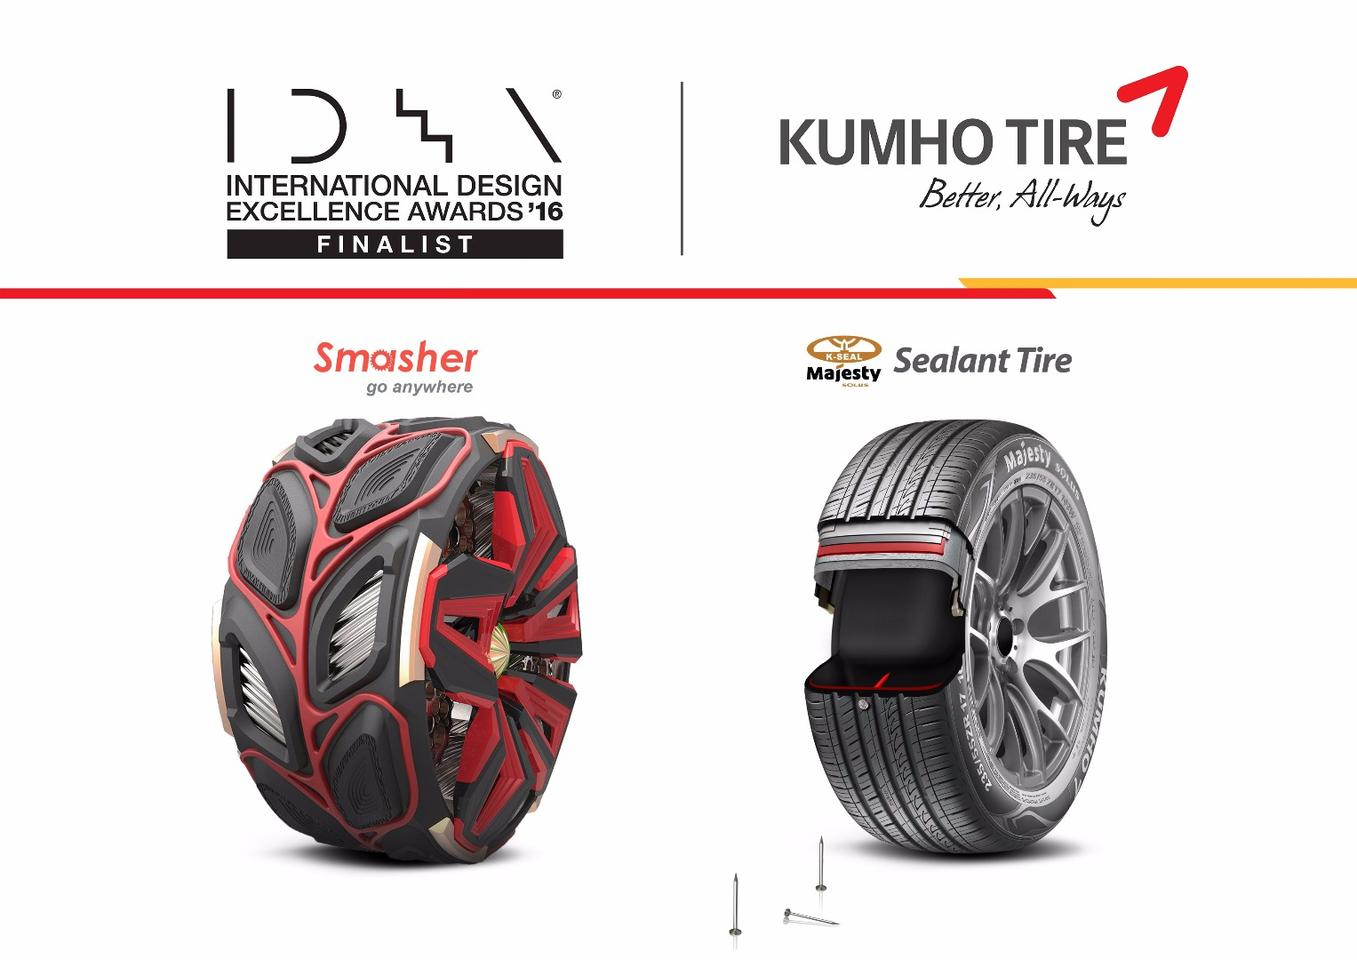 The two Kumho tire concepts have taken out numerous awards